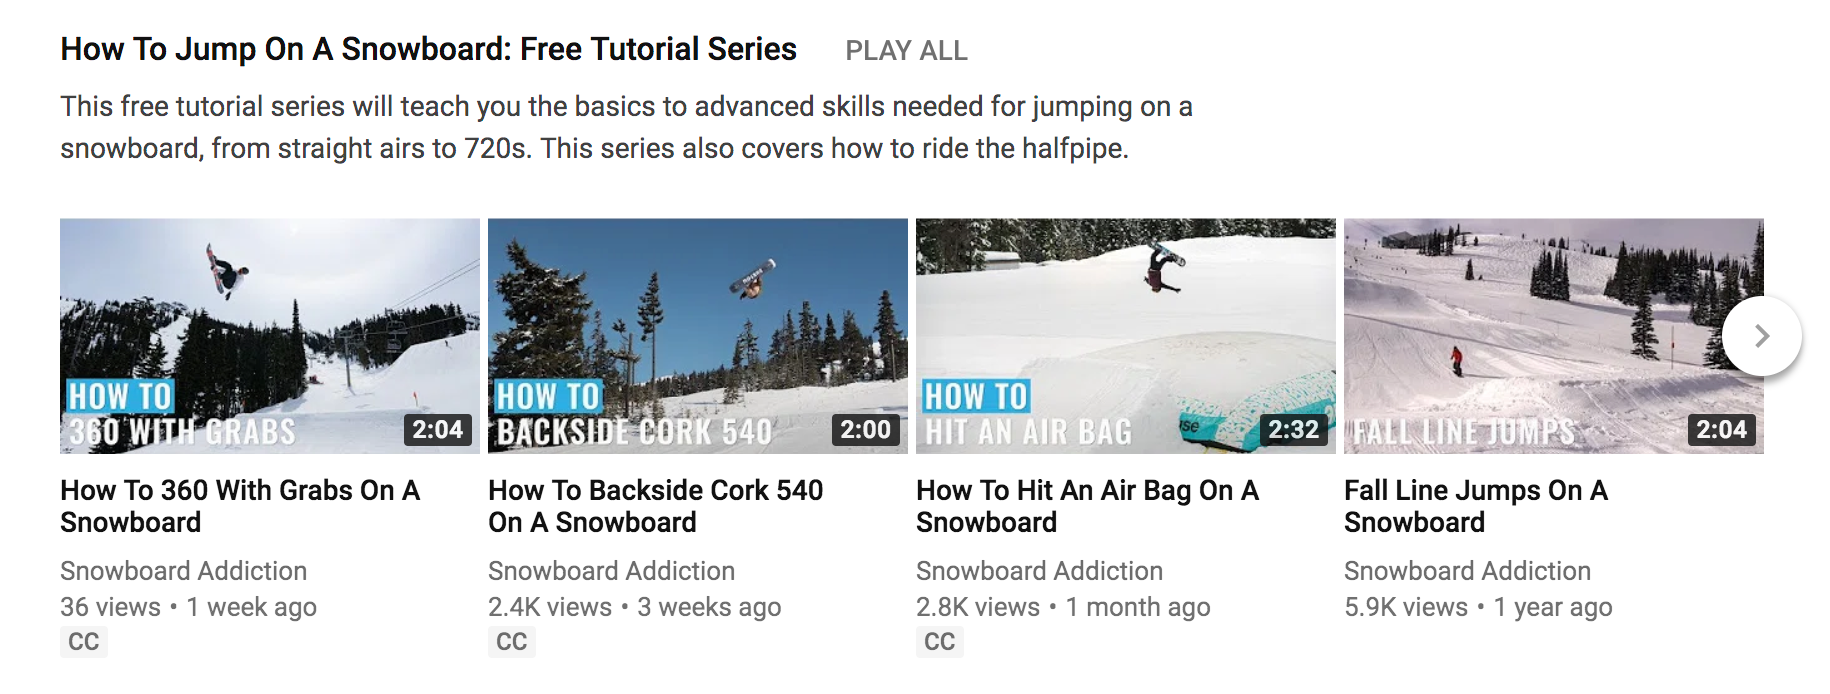 Youtube for business: here's an example of how-to videos and educational content from Snowboard Addiction